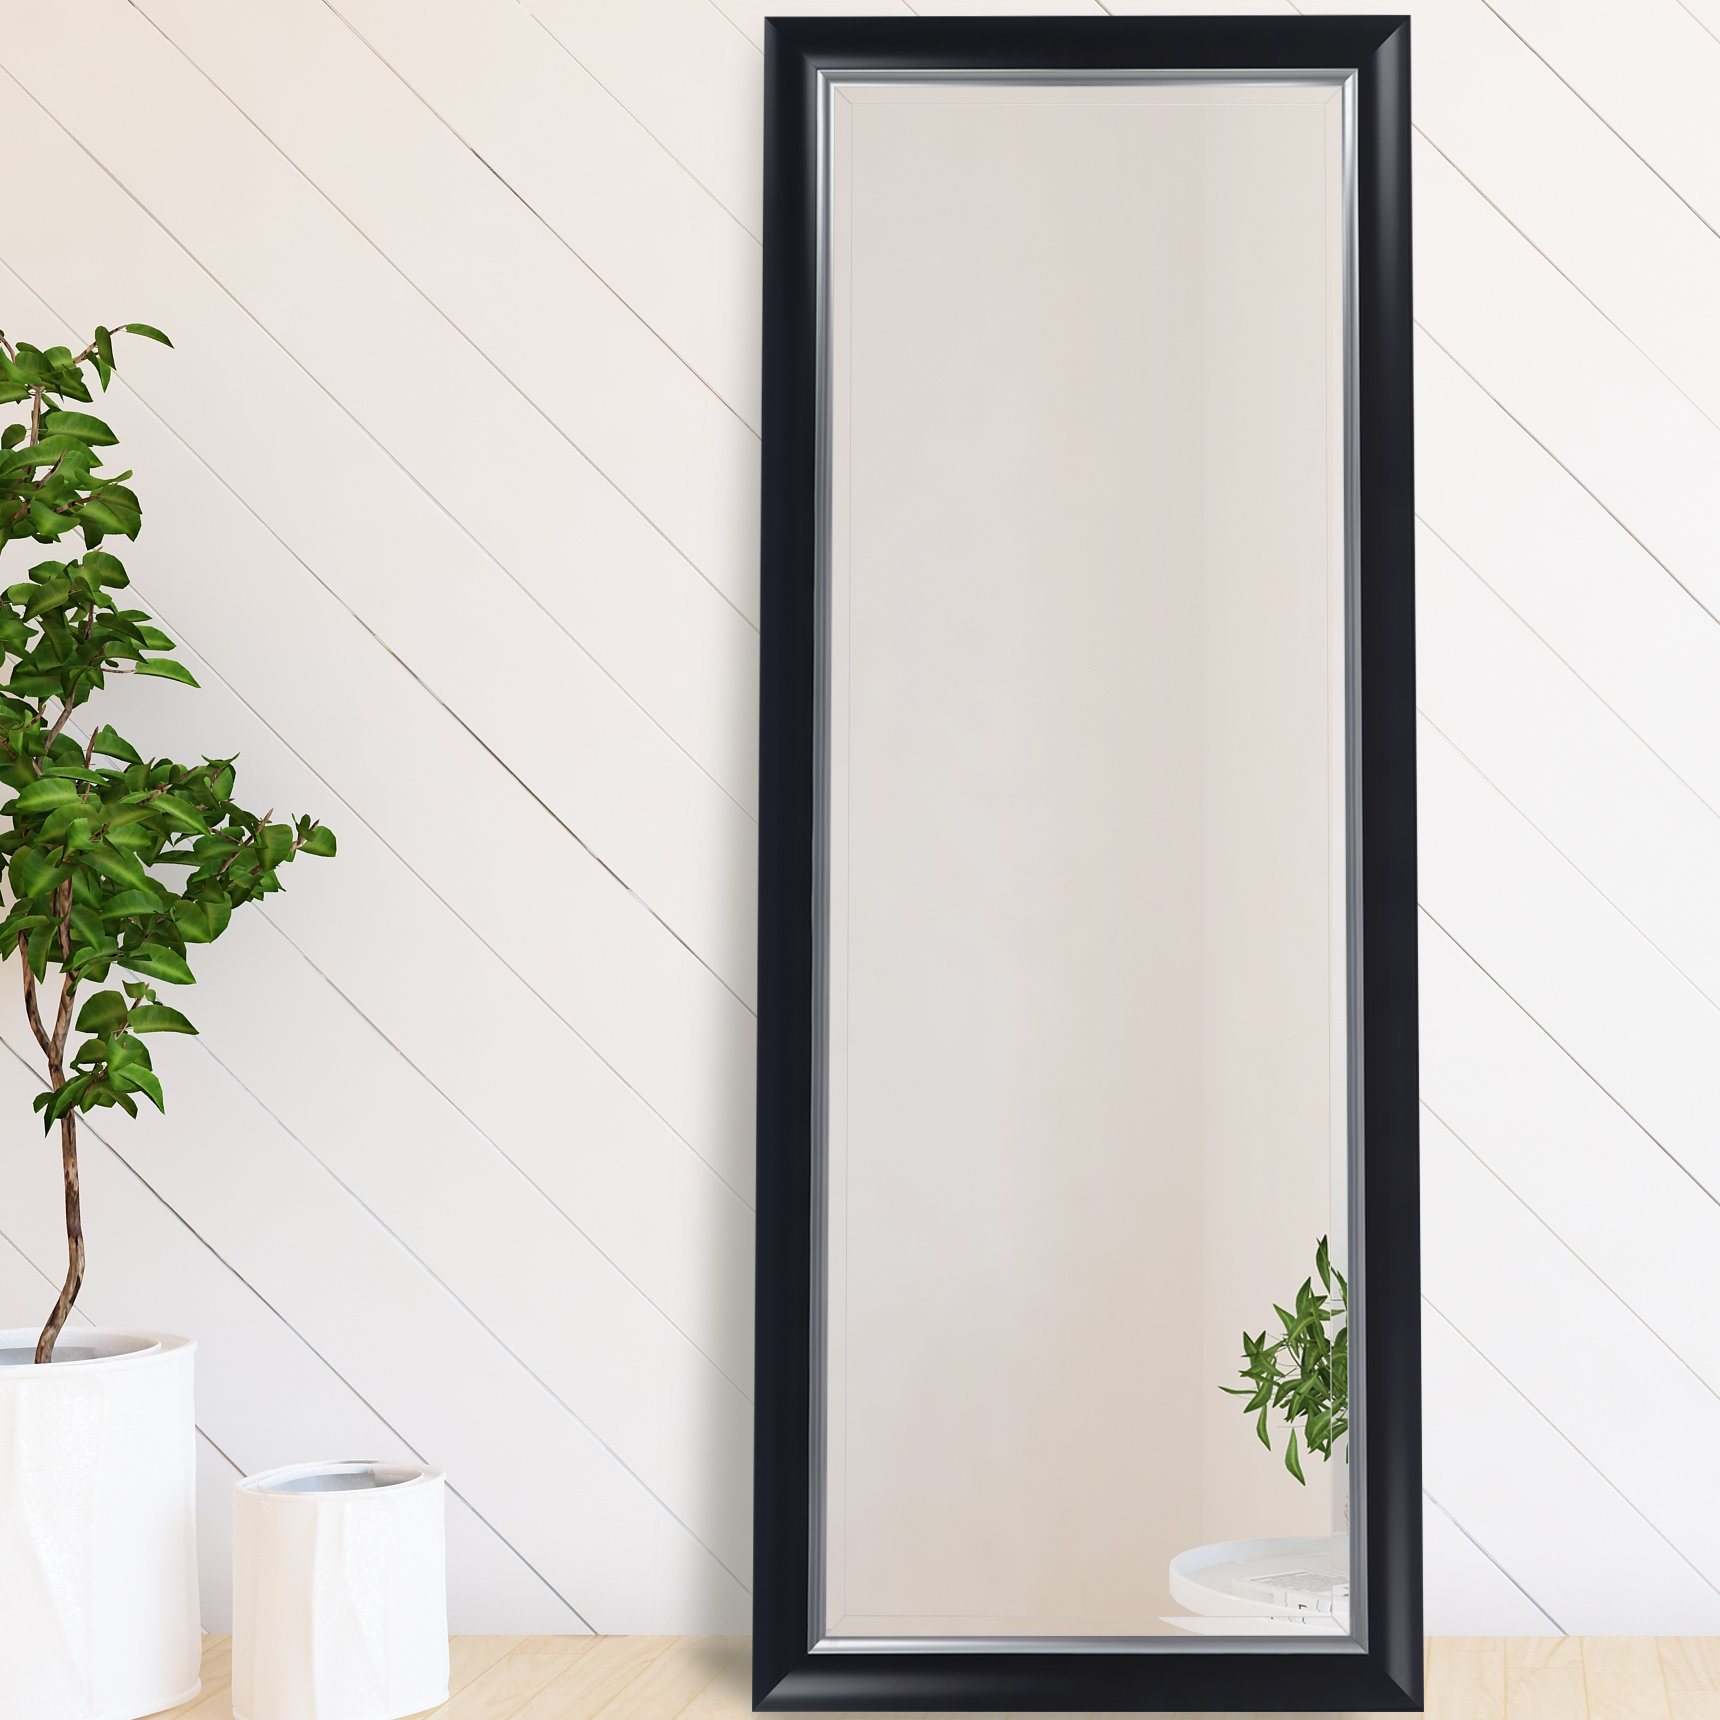 Henriqueta Scoop Framed Beveled Full Length Mirror With Regard To Dedrick Decorative Framed Modern And Contemporary Wall Mirrors (Image 11 of 20)